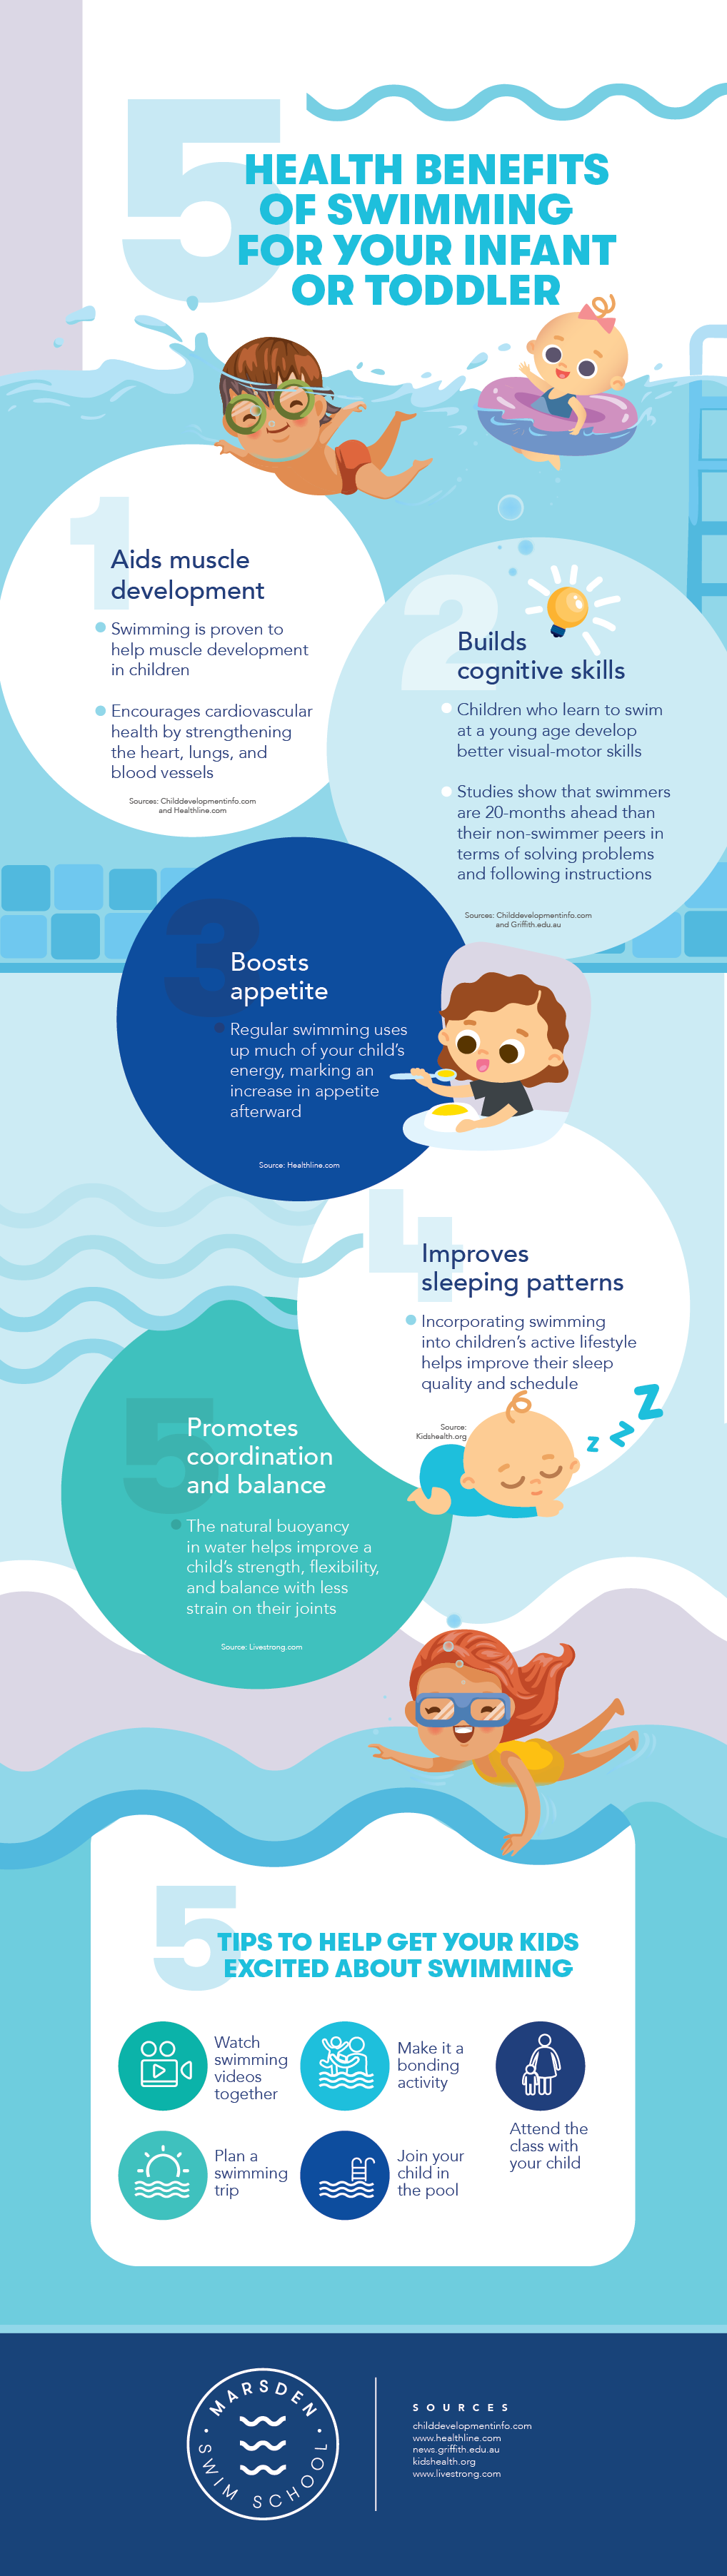 Health Benefits of Swimming for Your Infant or Toddler